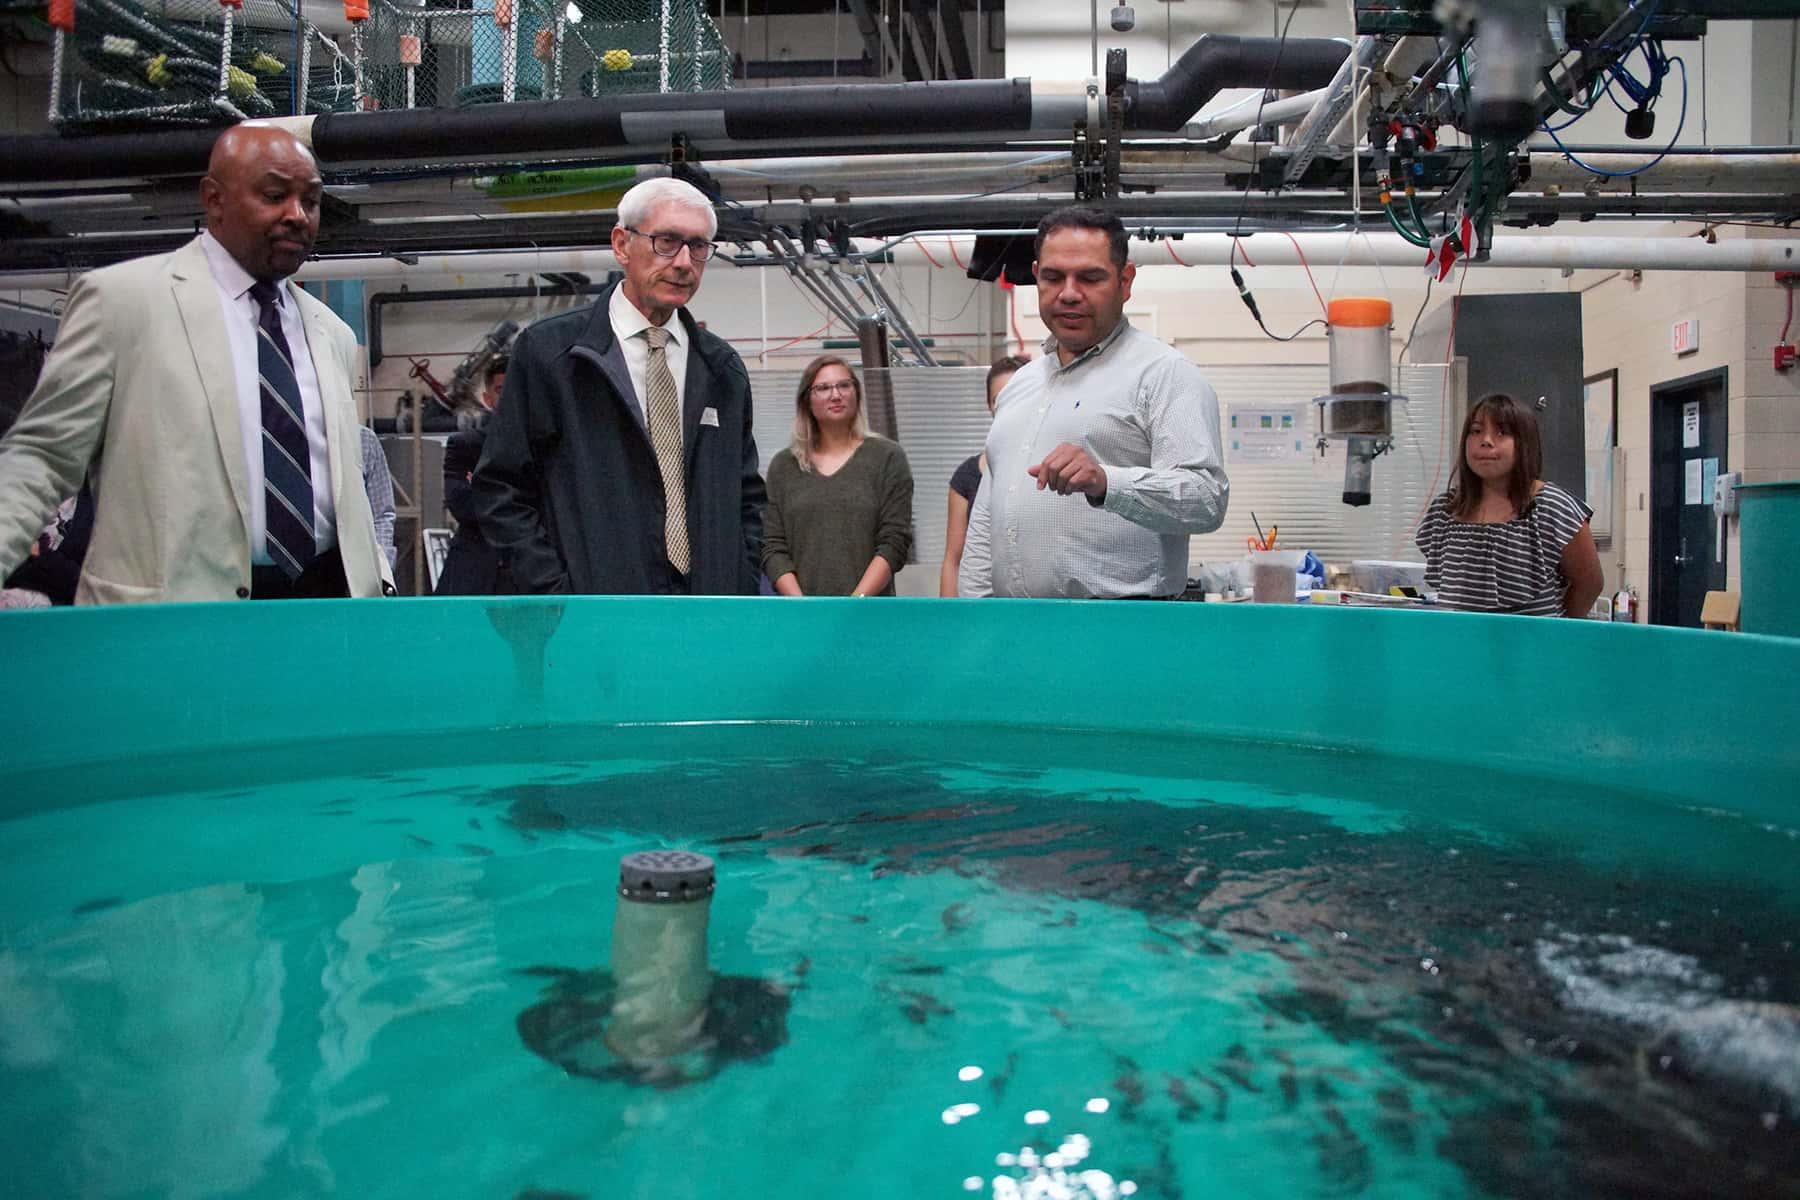 Governor Tony Evers applauds economic benefits of new Freshwater Collaborative during scientific tour - Milwaukee Independent